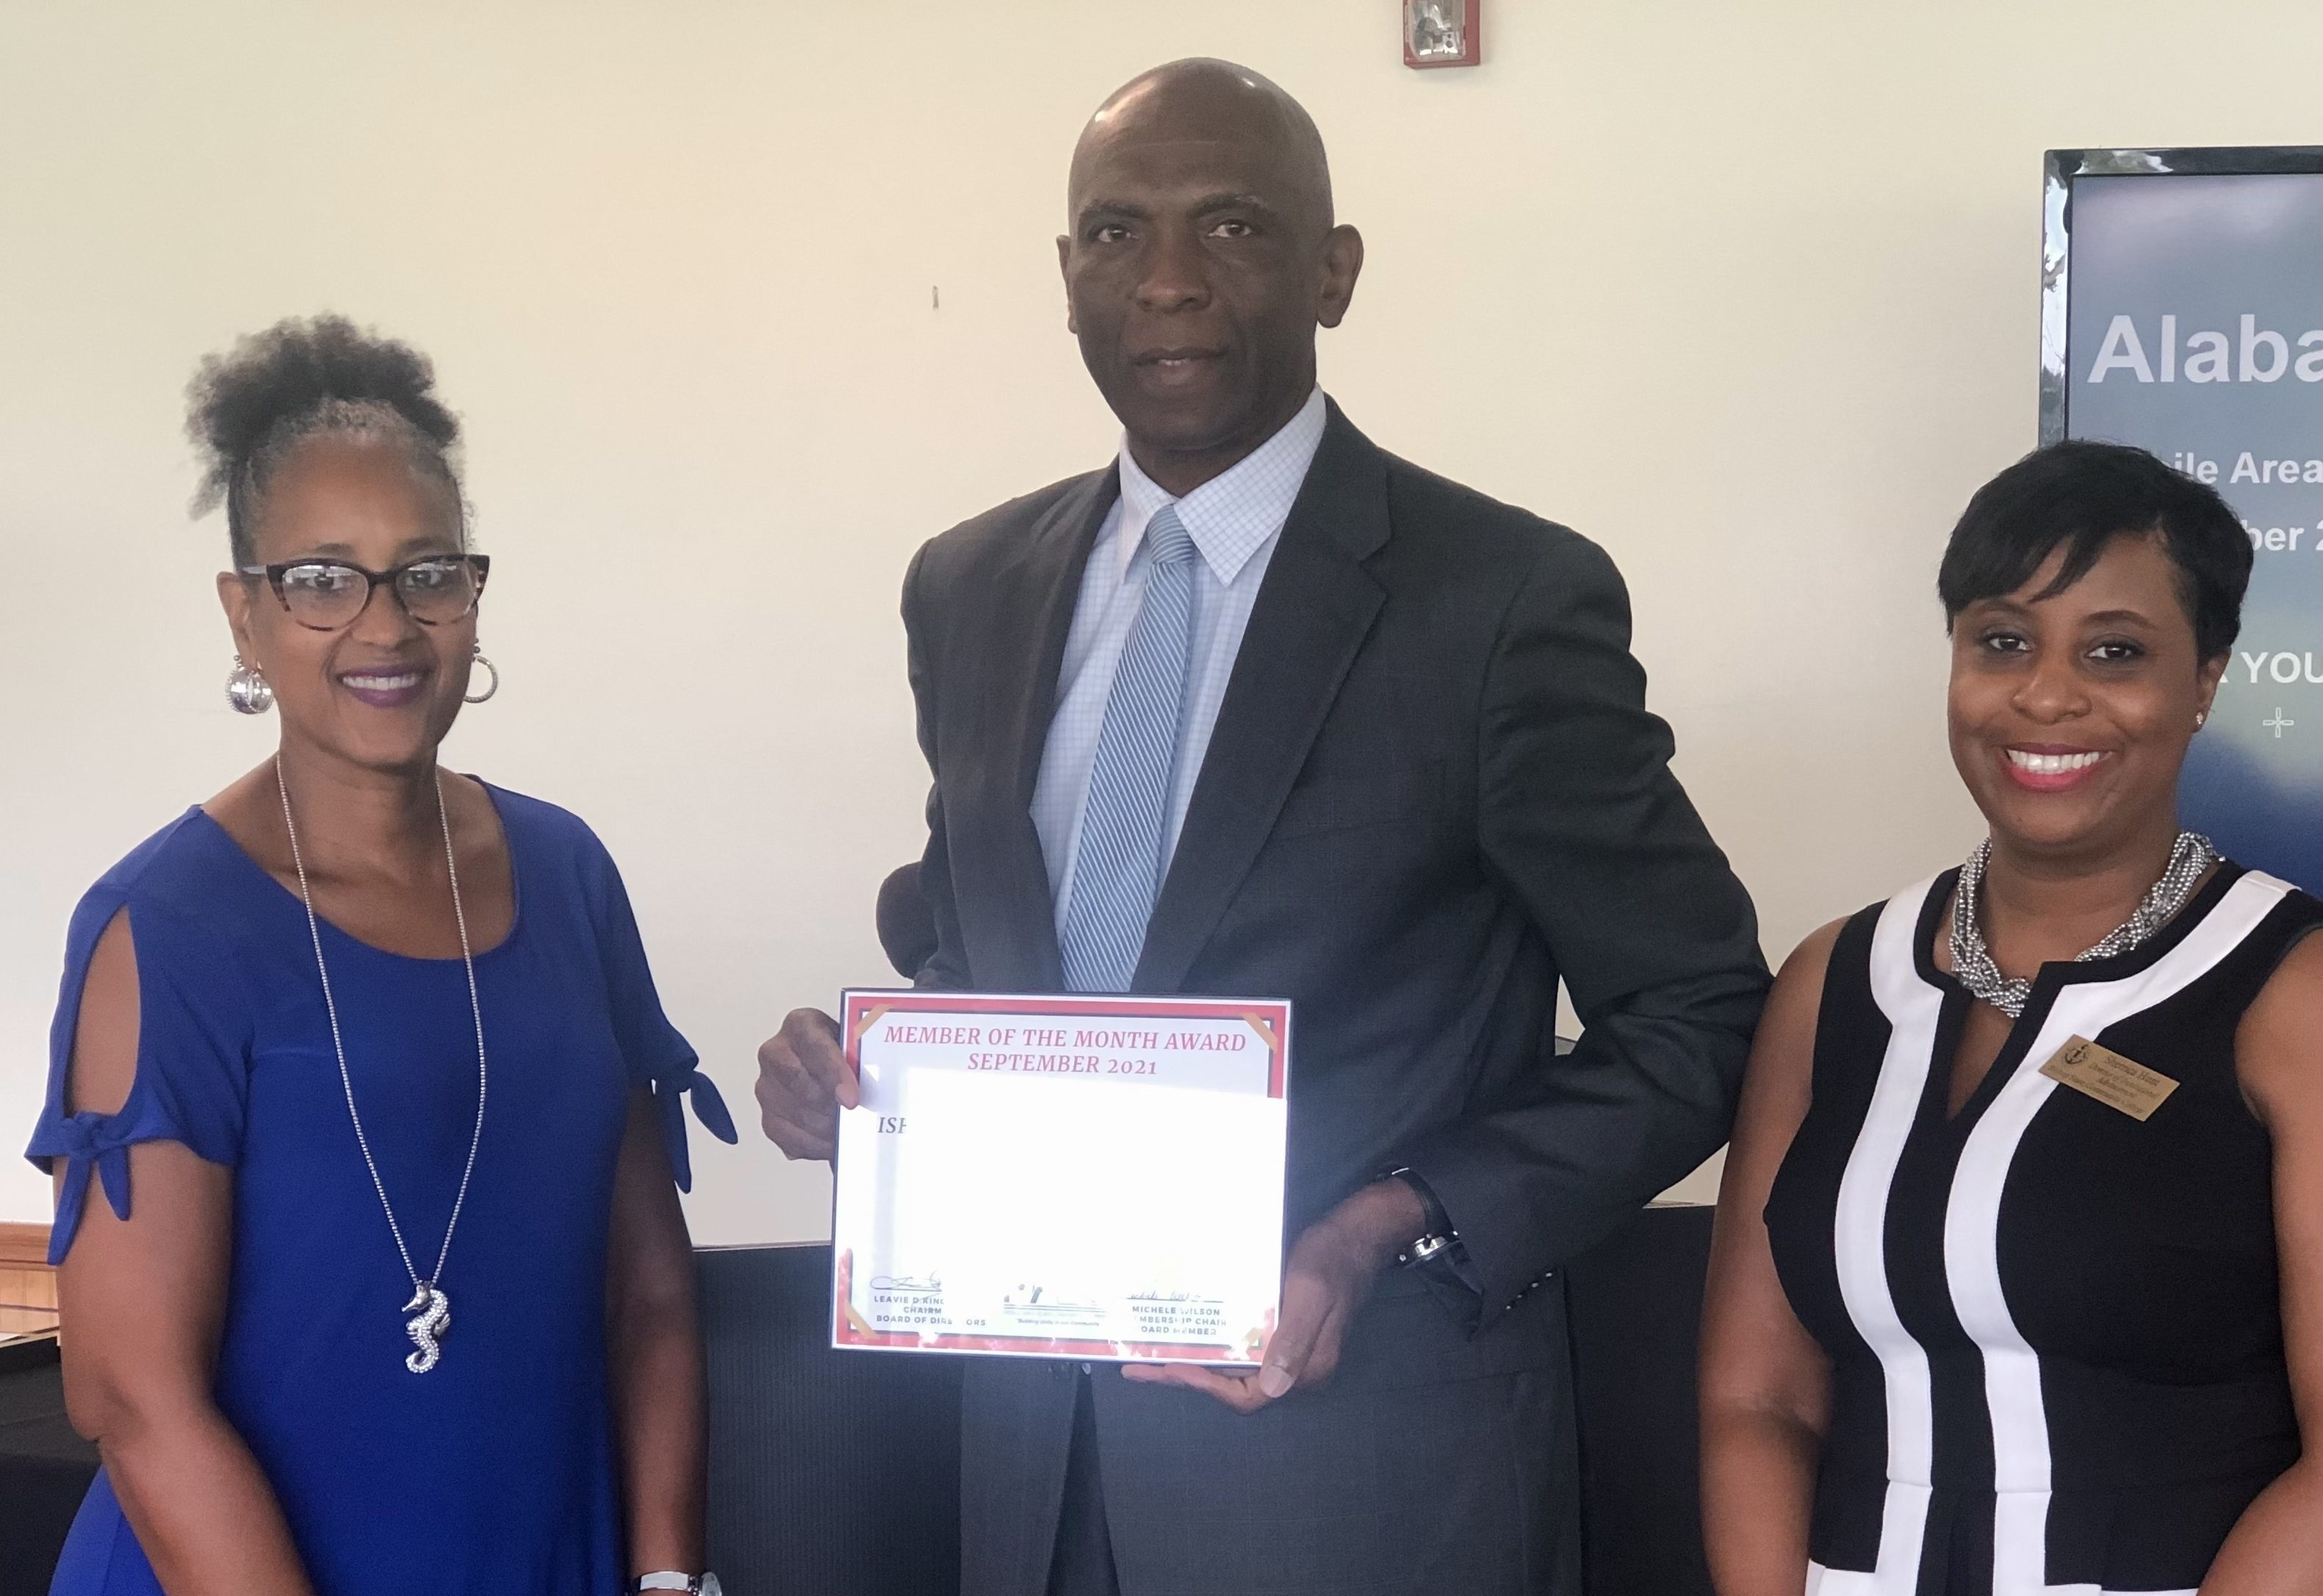 Bishop State MABC's September Member of the Month